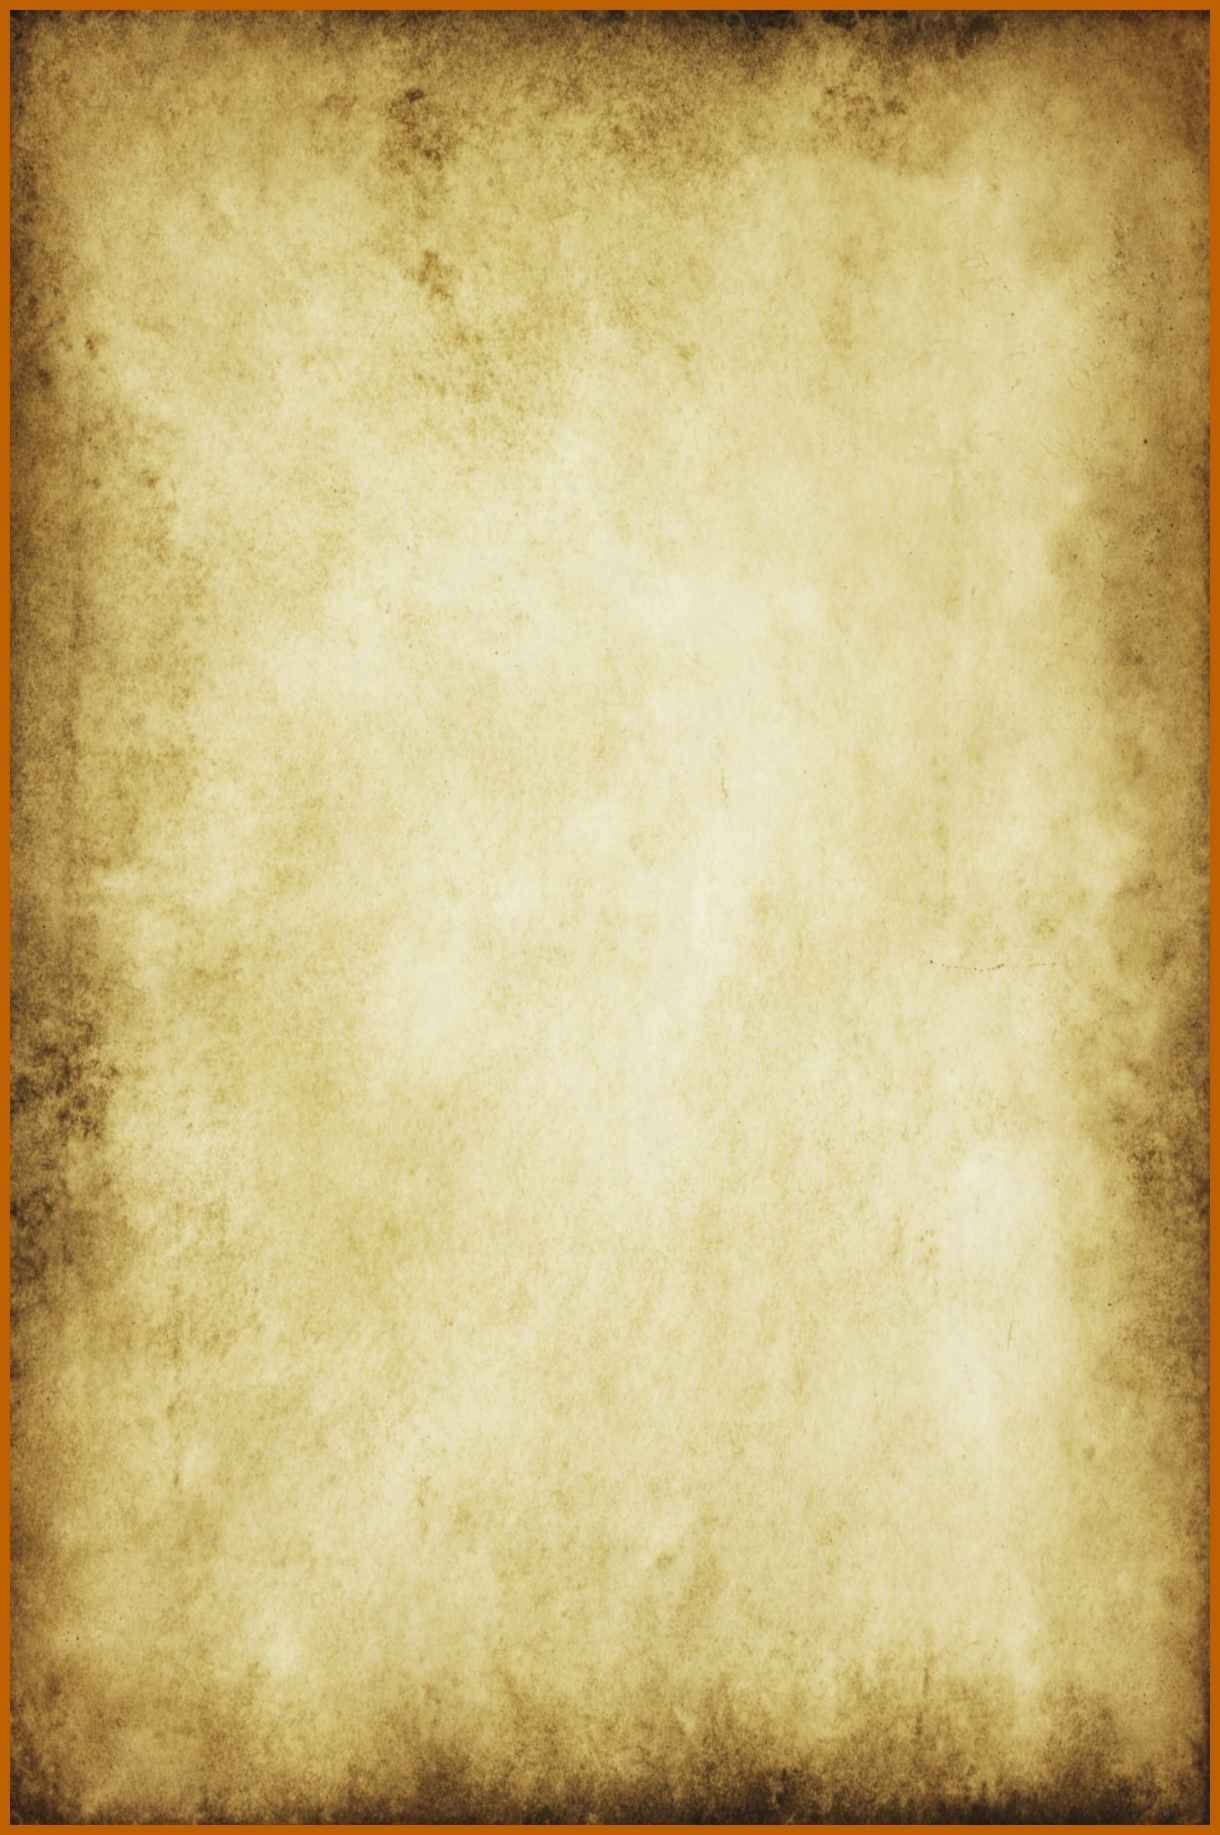 Blank Newspaper Templates - Google Search In 2019 | Paper Throughout Old Blank Newspaper Template